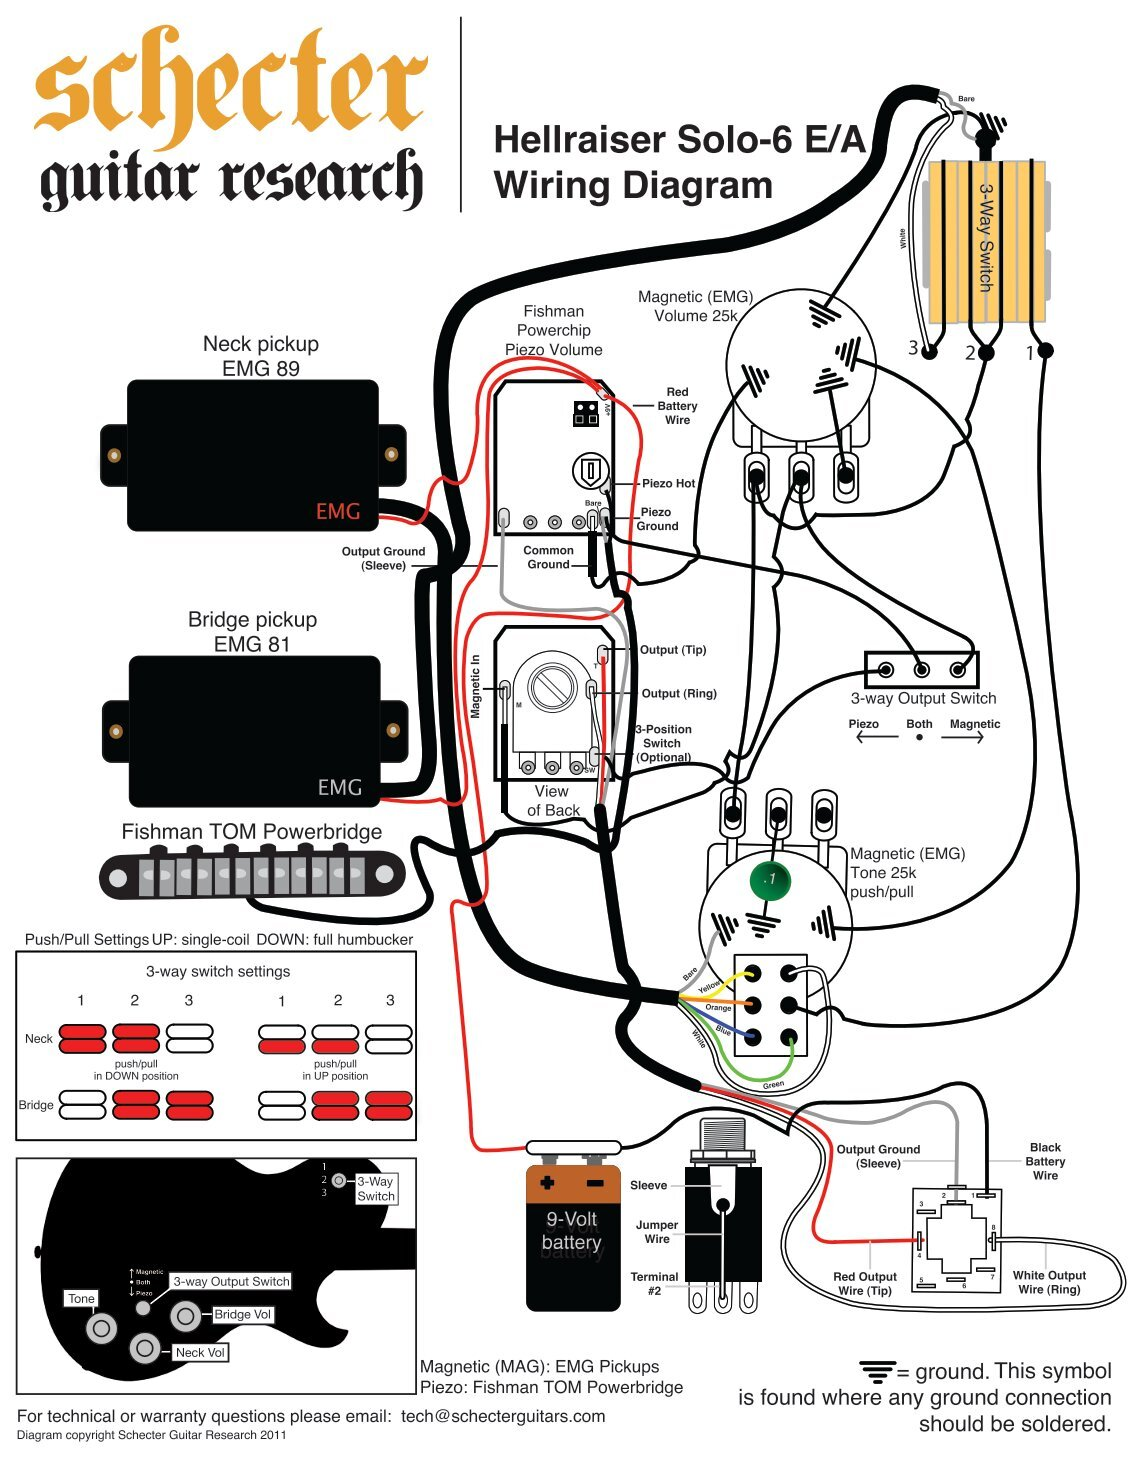 advent rv air conditioner wiring diagram wiring diagram Thermostat Wiring for Furnace Only  Goodman Thermostat Wiring Diagram Honeywell Mercury Thermostat Wiring Diagram Honeywell Home Thermostat Wiring Diagram